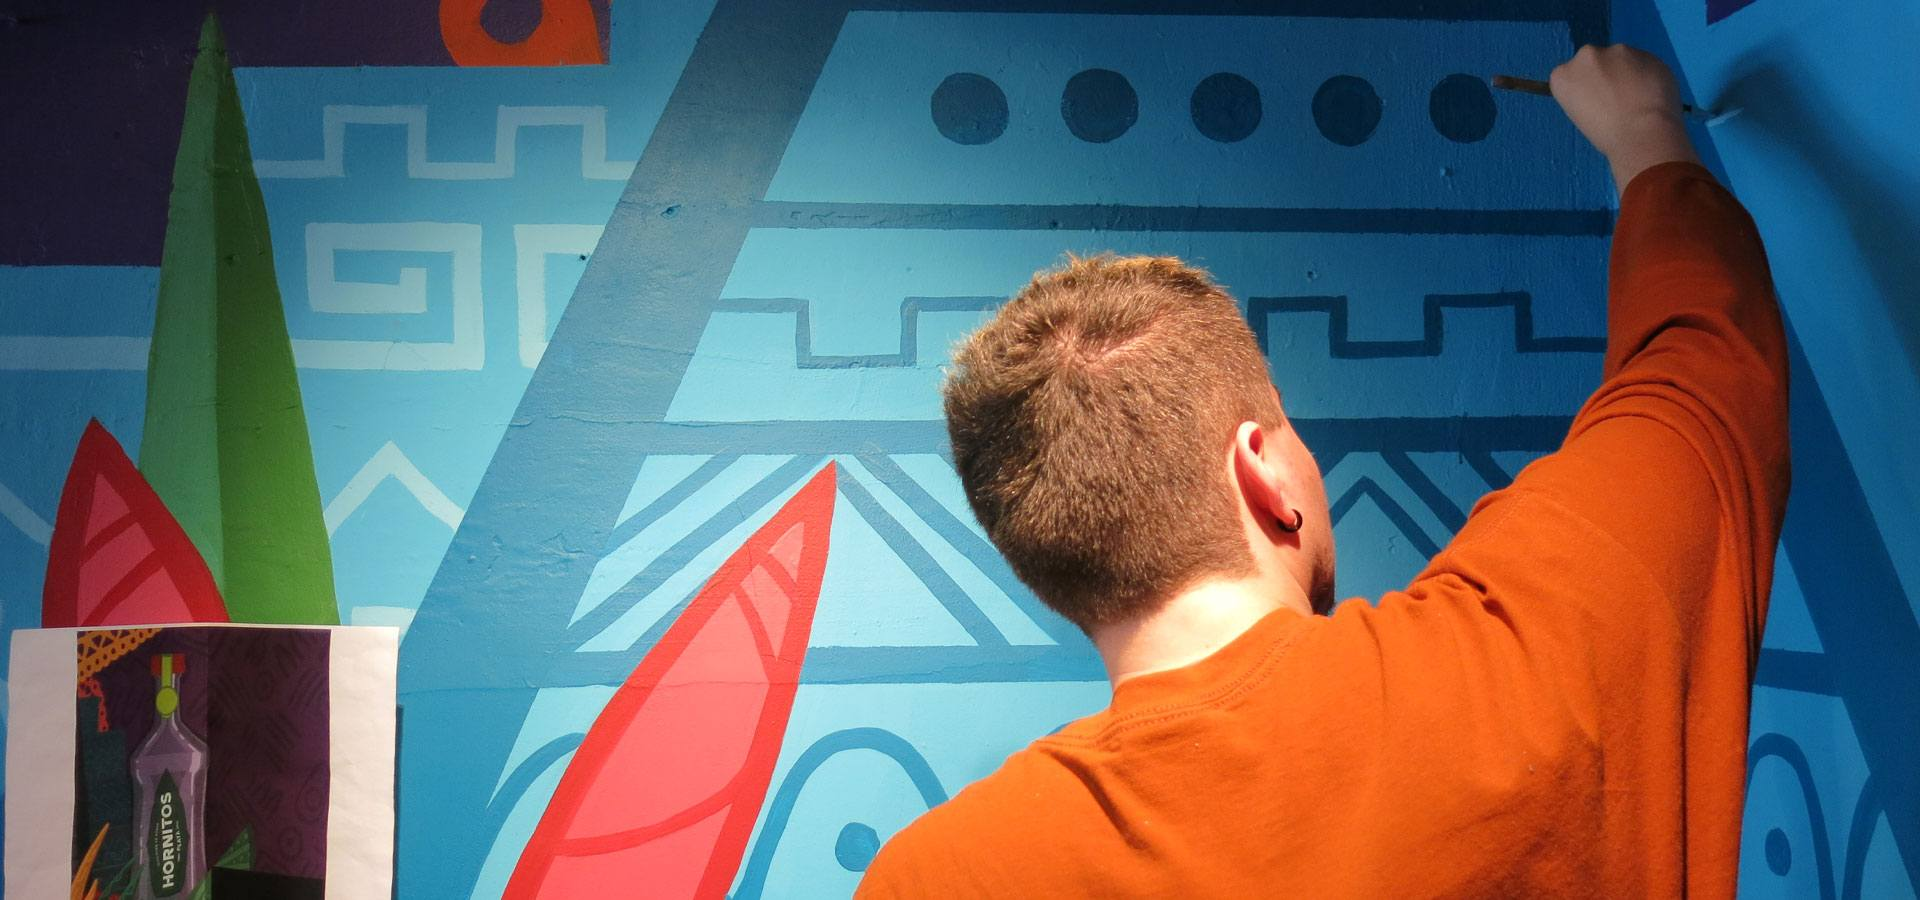 Someone working on a decorative mural inspired by Mexican iconography